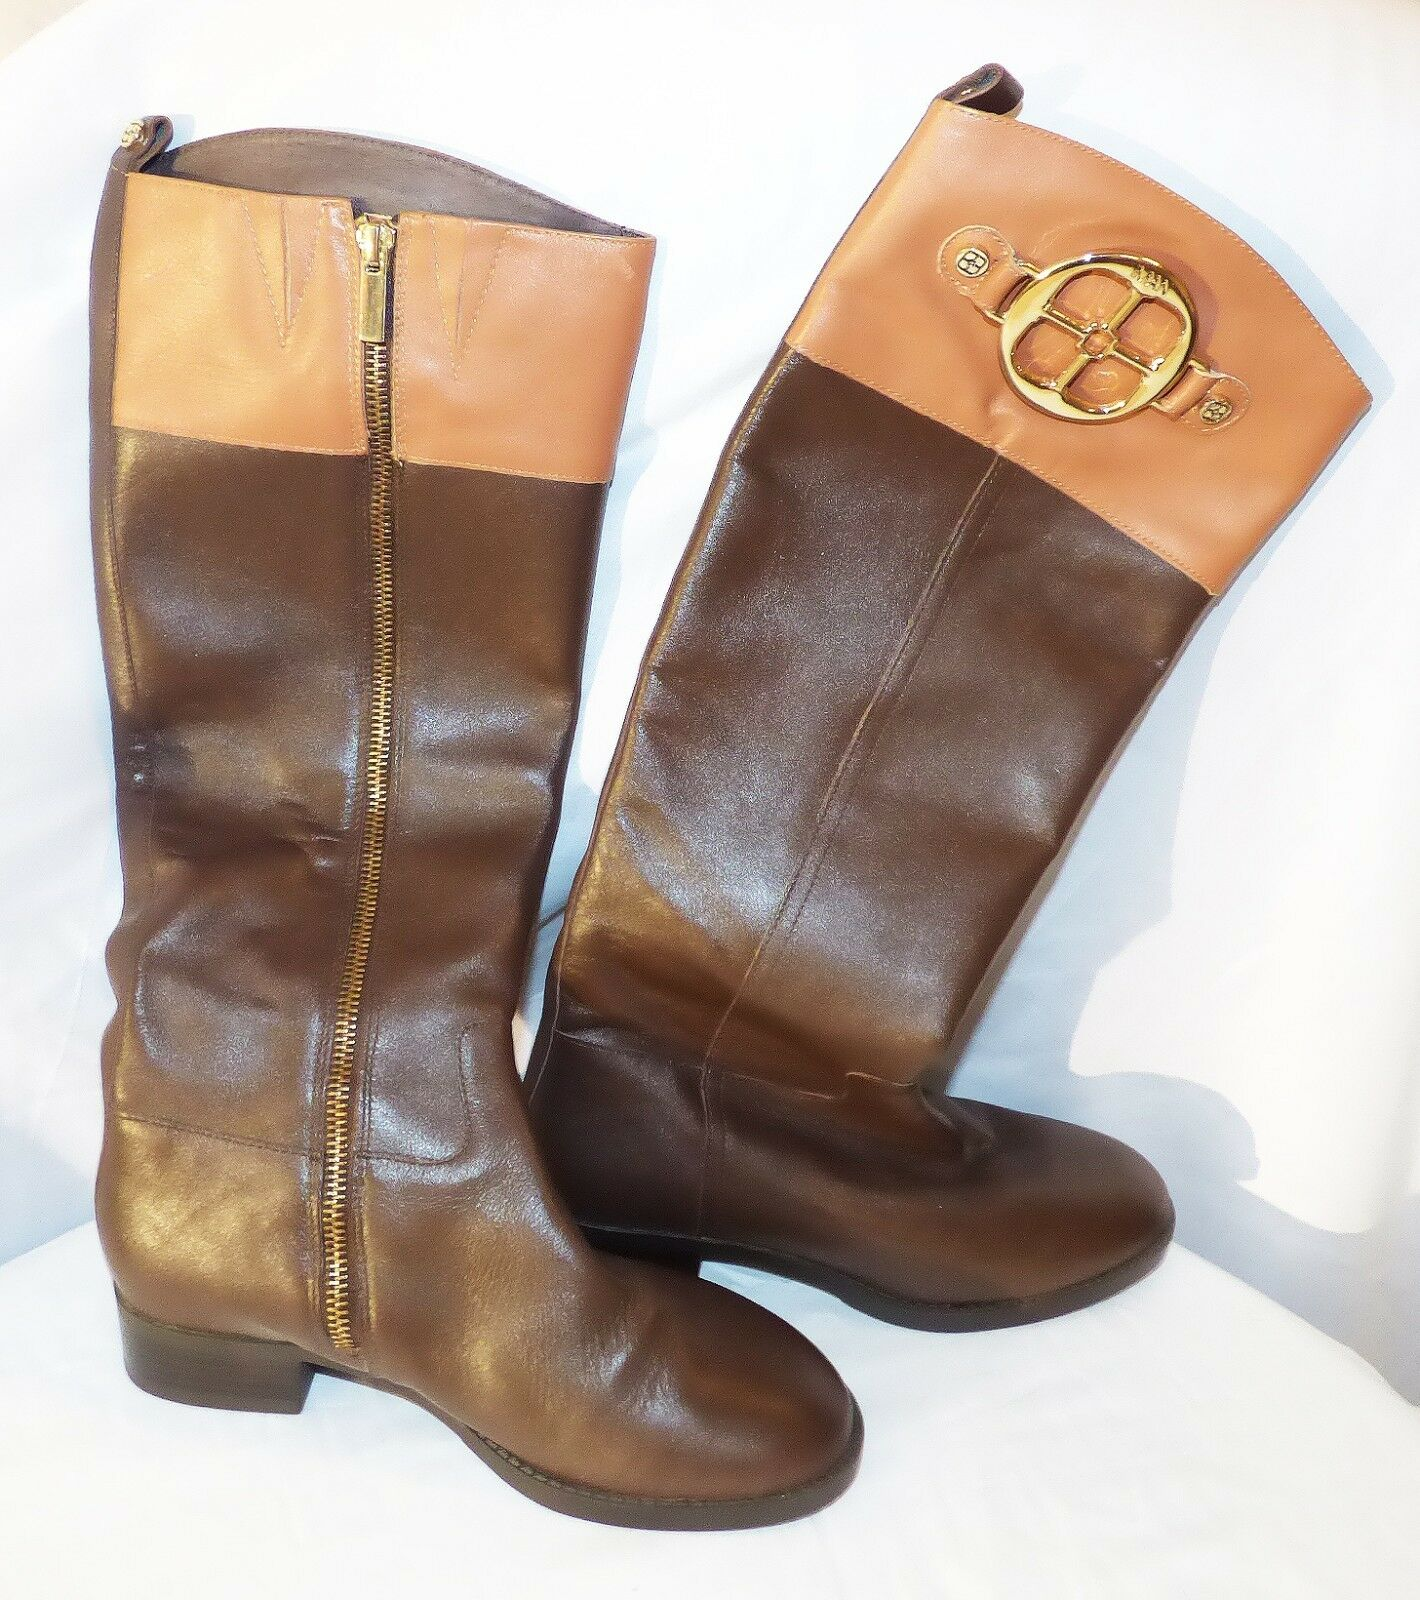 Authentic IMAN Rich Brown Leather Boots Knee High Sz 38 7.5-8 BRAND NEW STUNNING